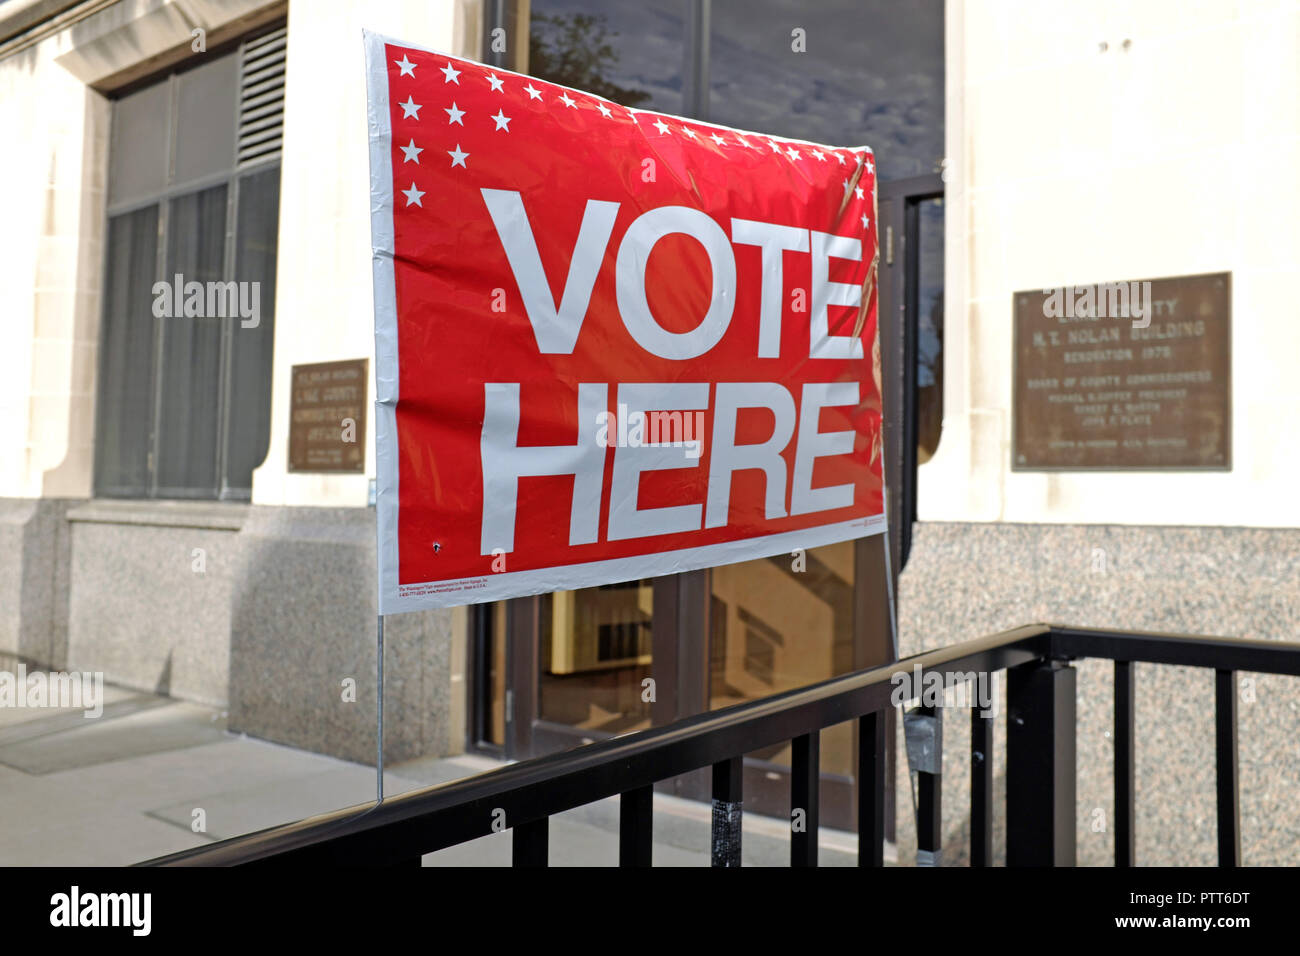 Painesville, Ohio, USA, 10th Oct, 2018.  A 'Vote Here' sign is prominently displayed at the entrance to the Lake County Board of Elections in Painesville, Ohio, USA, where early voting began today.  This is the first day for early voting in the 2018 general election.  People may vote at their county Board of Elections up through Election Day, November 6, 2018.  Credit: Mark Kanning/Alamy Live News. Stock Photo